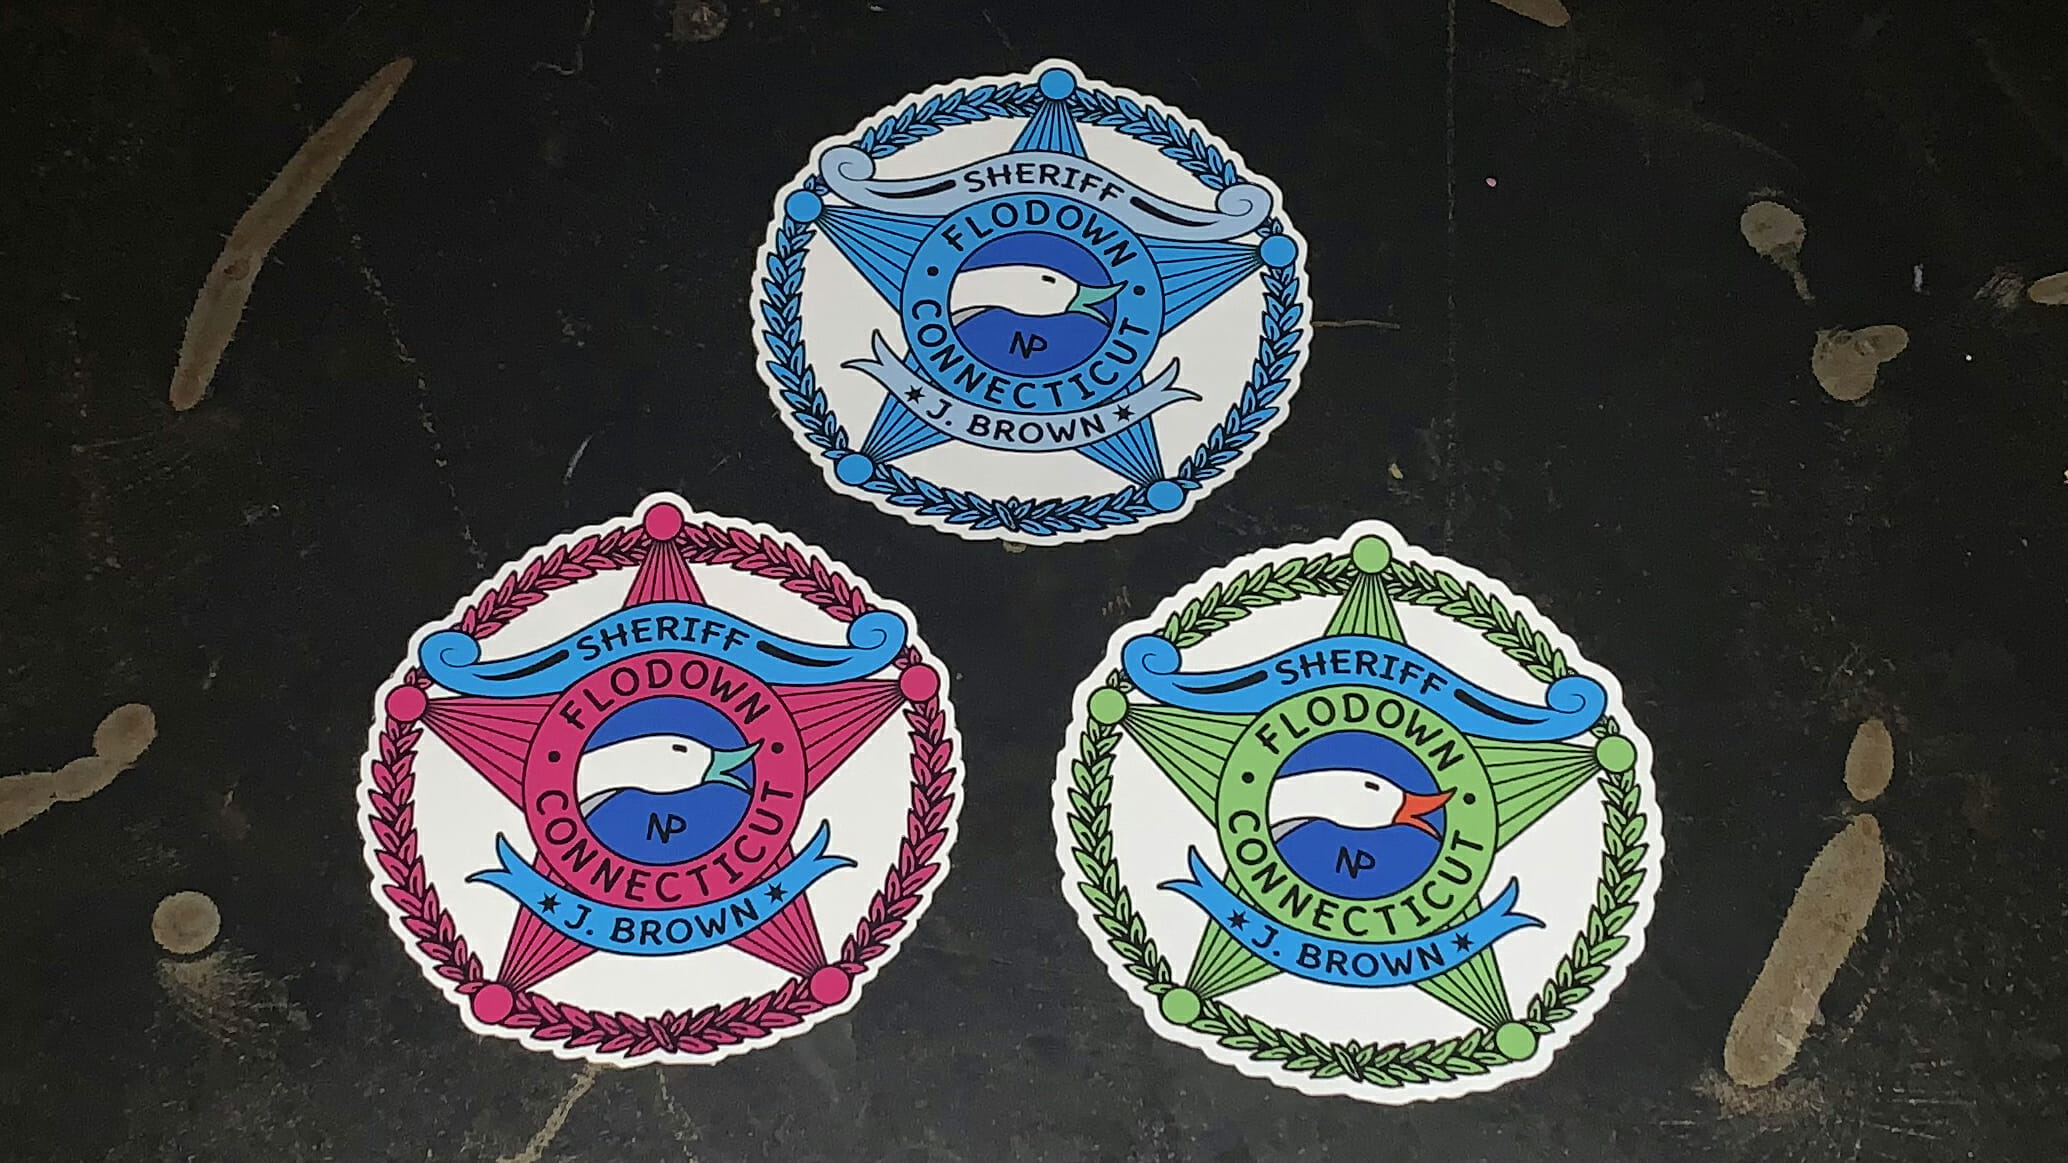 NP - 2020 - Goose - Sheriff Badge - Window Clings